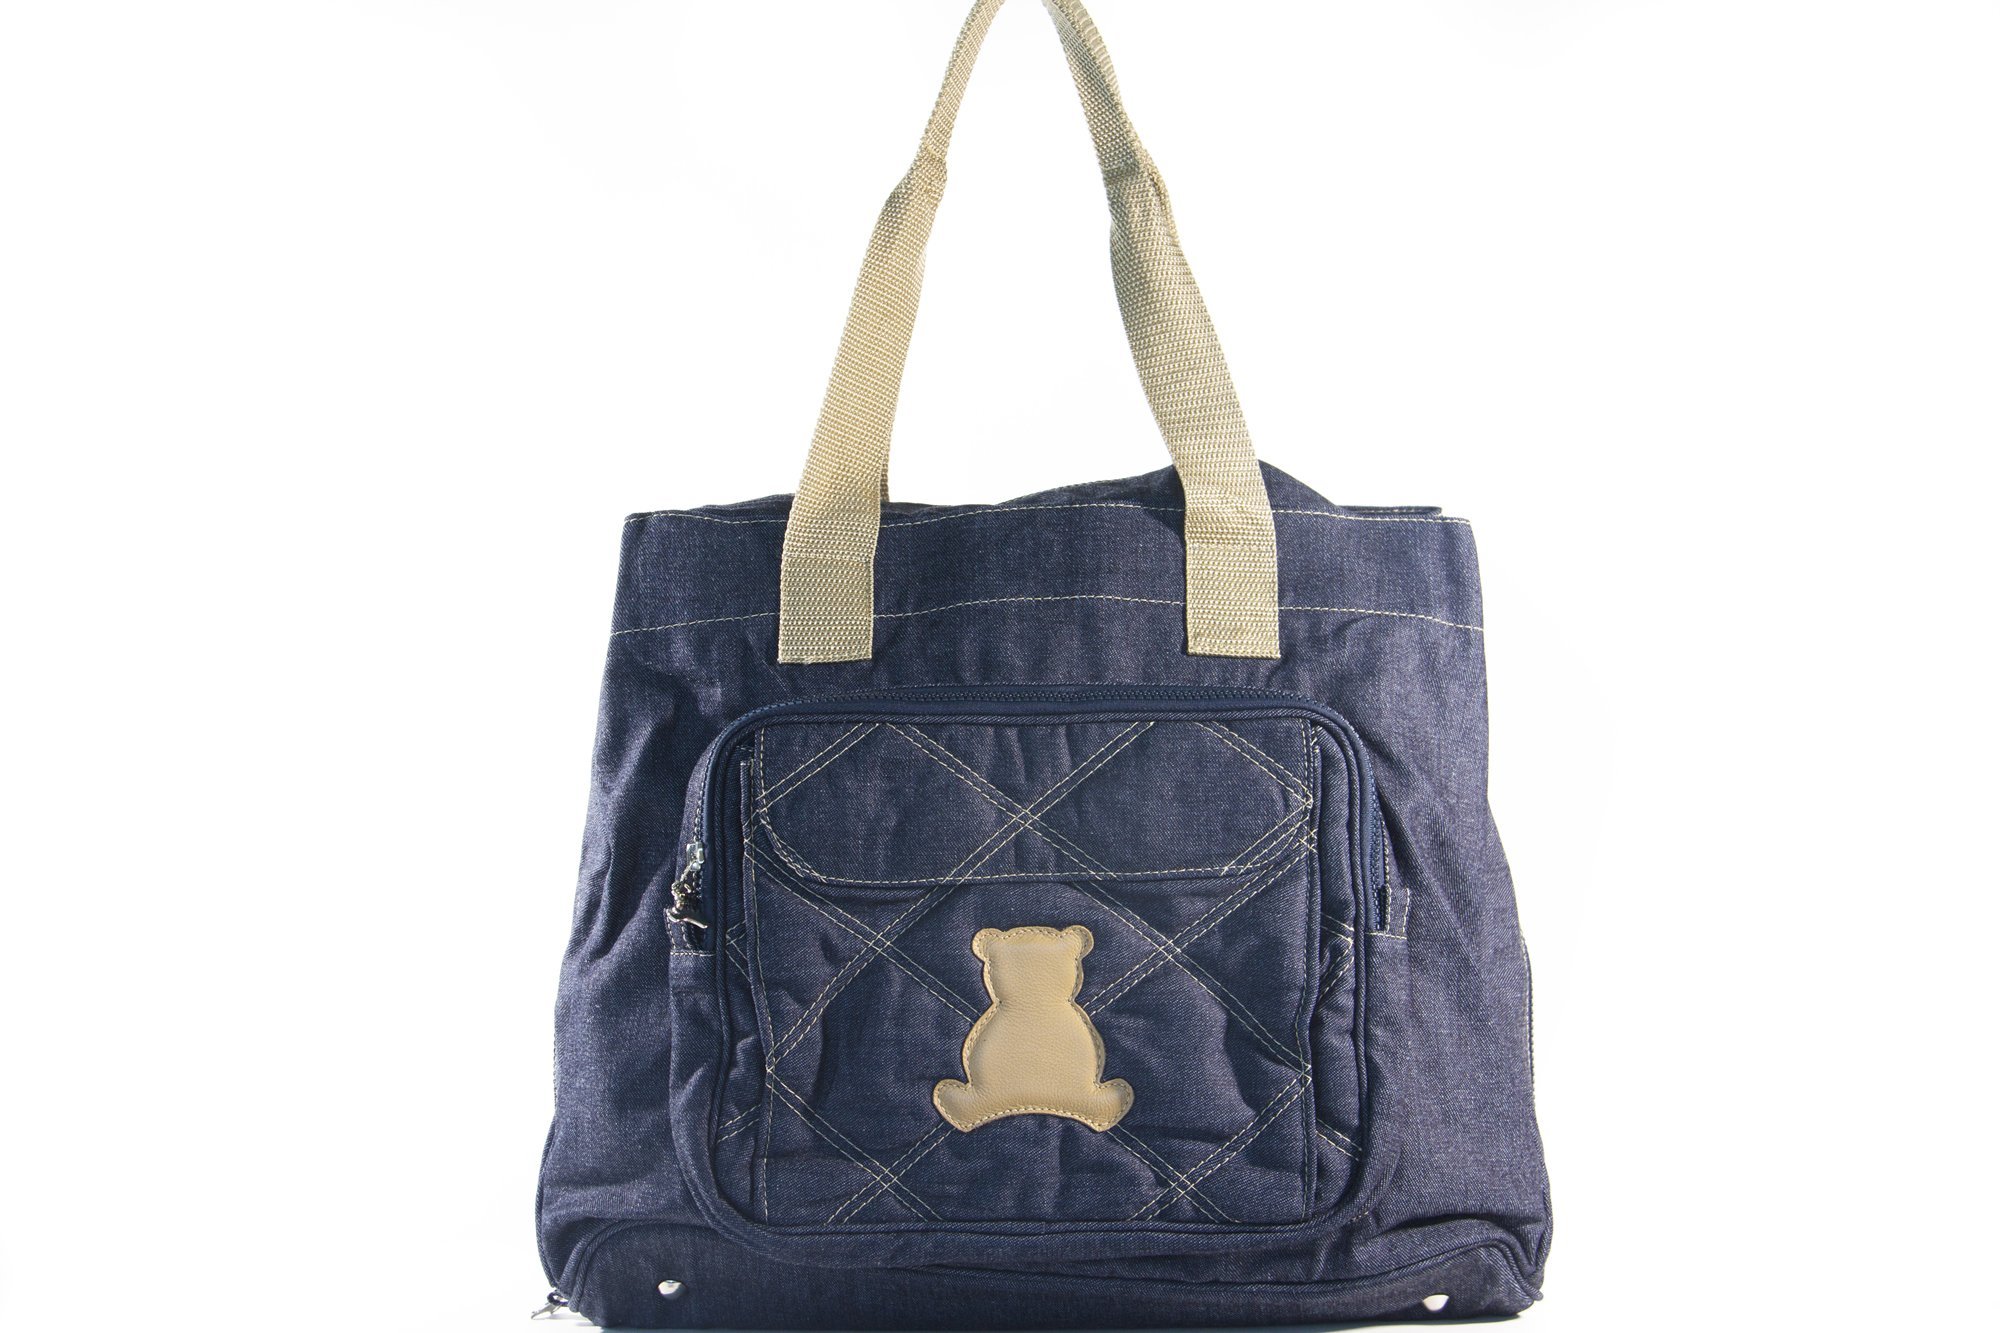 BL BABY - Elegance Collec. - LG - Shoulder Bag - 3 Themal Pockets & Mag. Clasp - Jeans - 8x16x13''